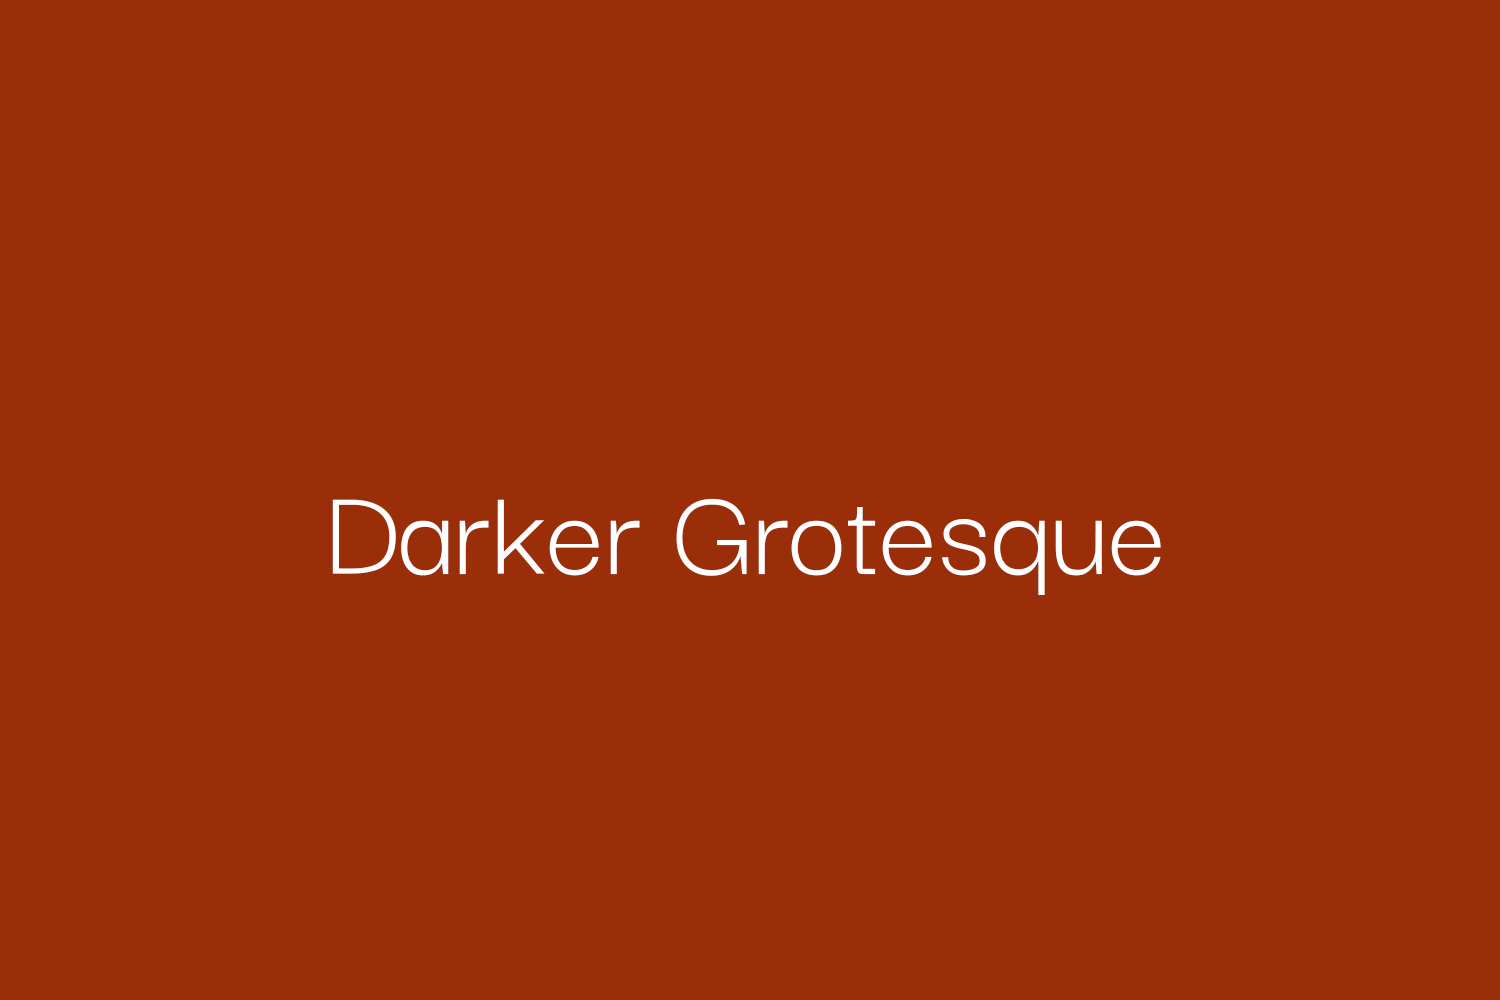 Darker Grotesque